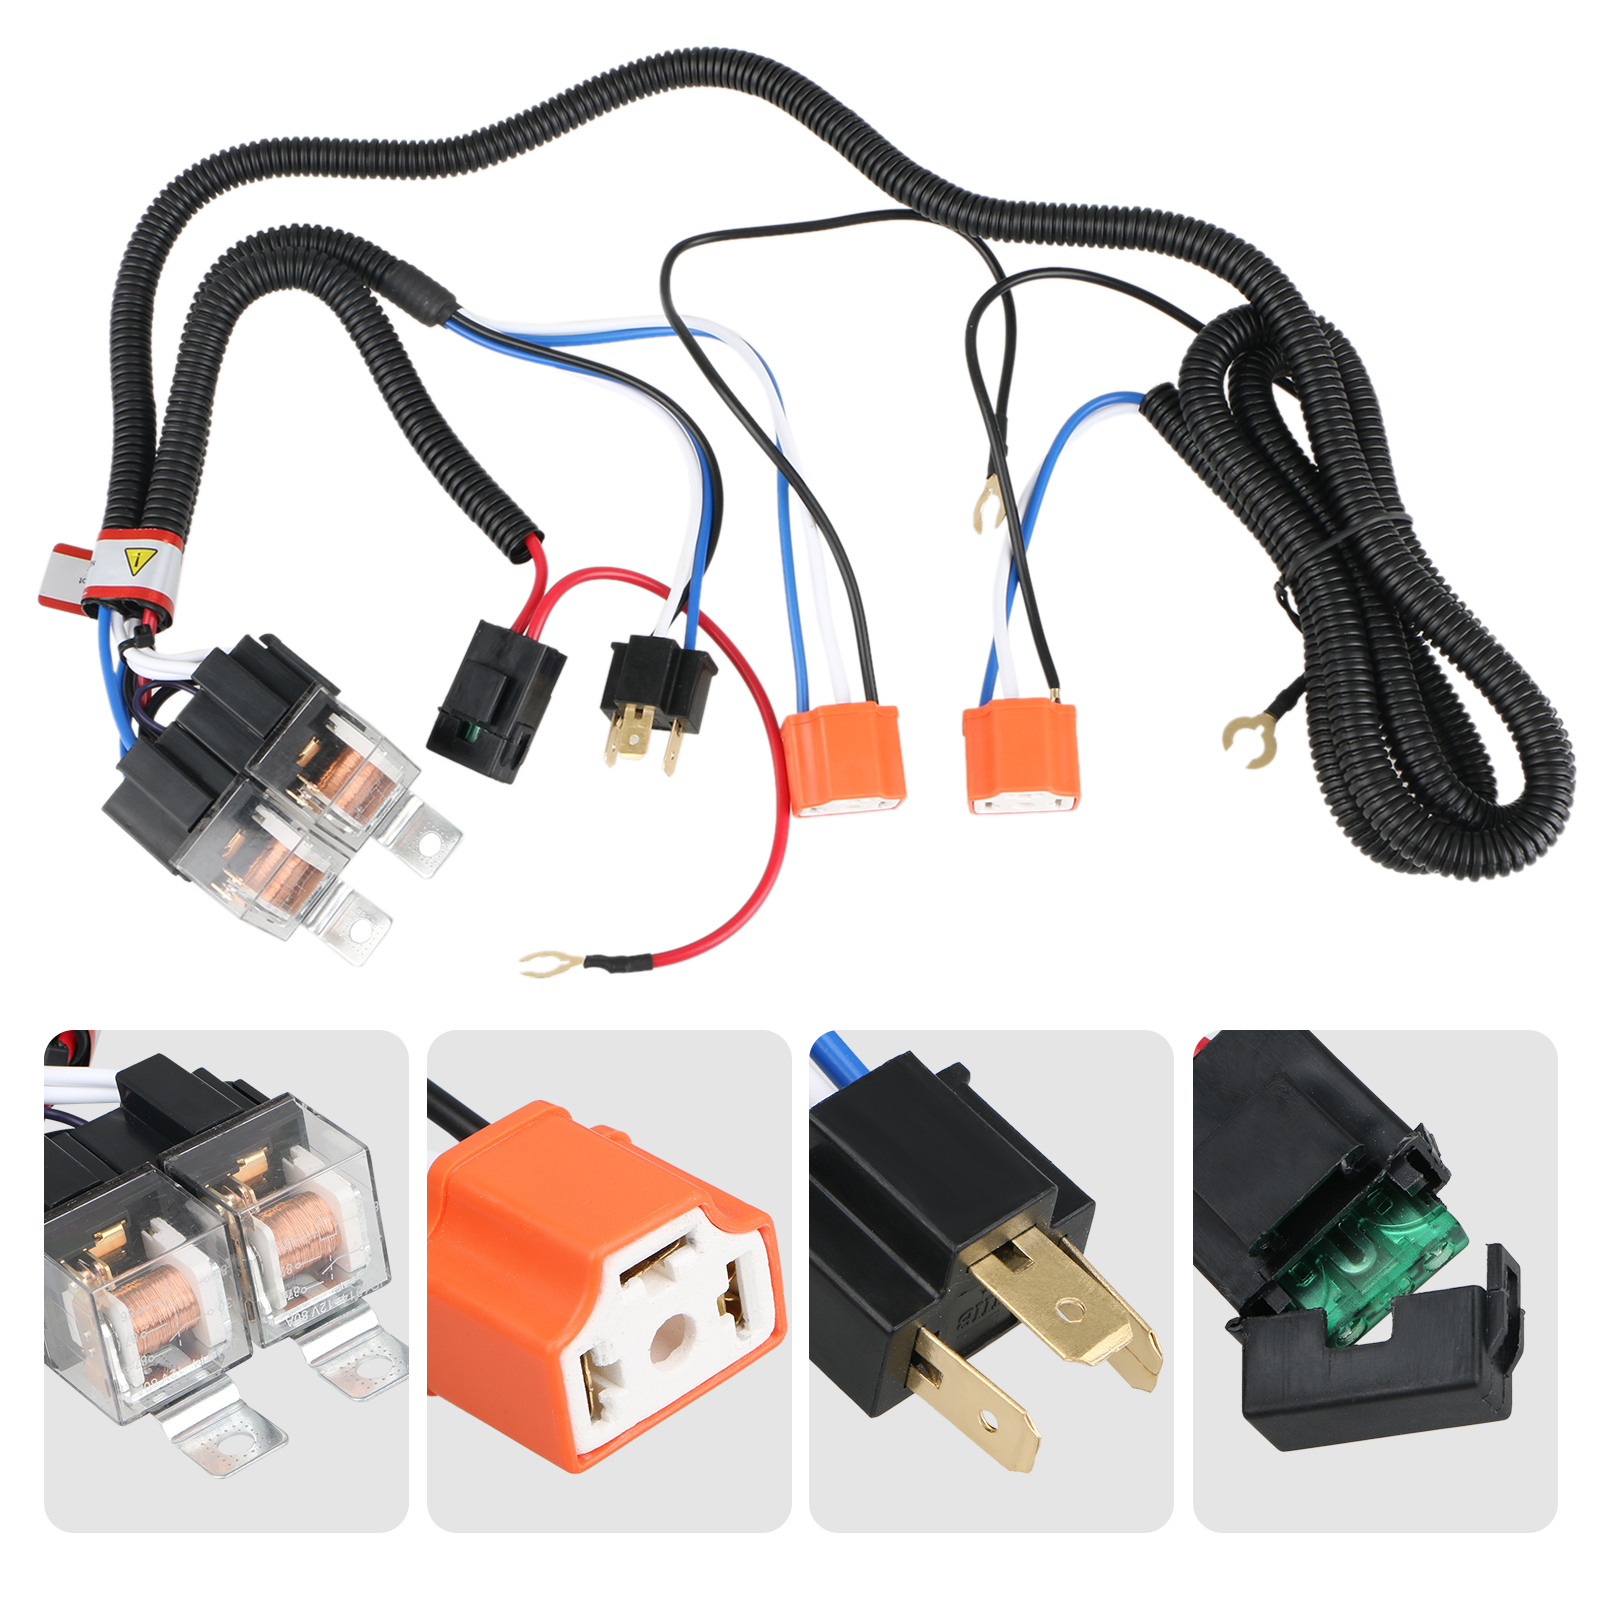 hight resolution of tsv 1set 2 headlight harness h4 headlight relay harness h6054 h4 9003 bulb wiring h4 headlight relay wiring harness